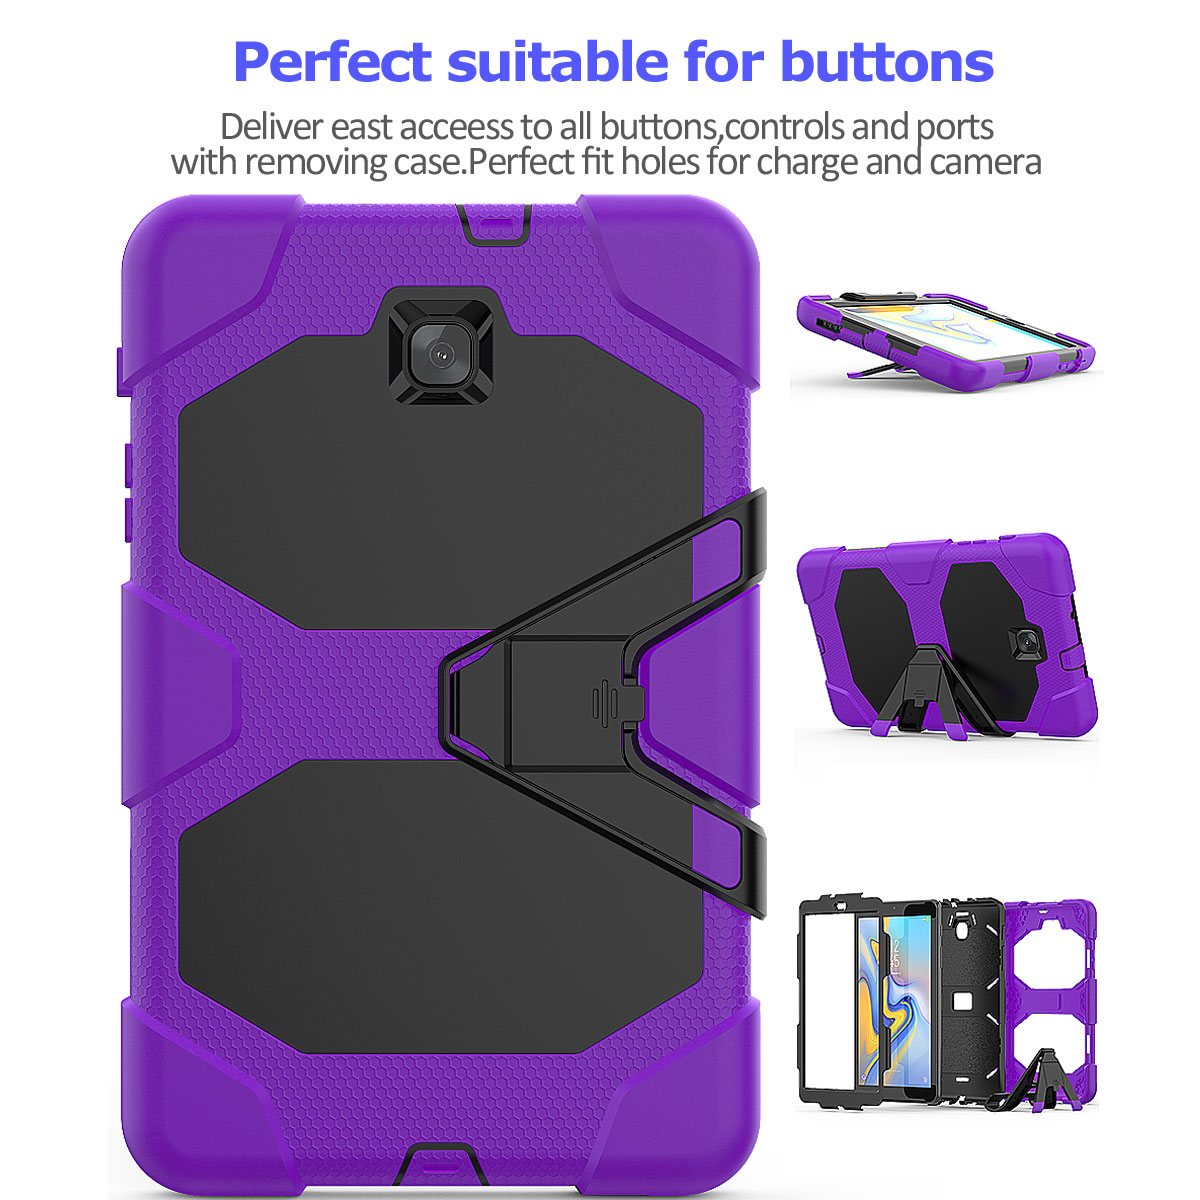 Rugged-Hard-Case-For-Samsung-Galaxy-Tab-A-8-0-2018-SM-T387-with-Screen-Protector thumbnail 32